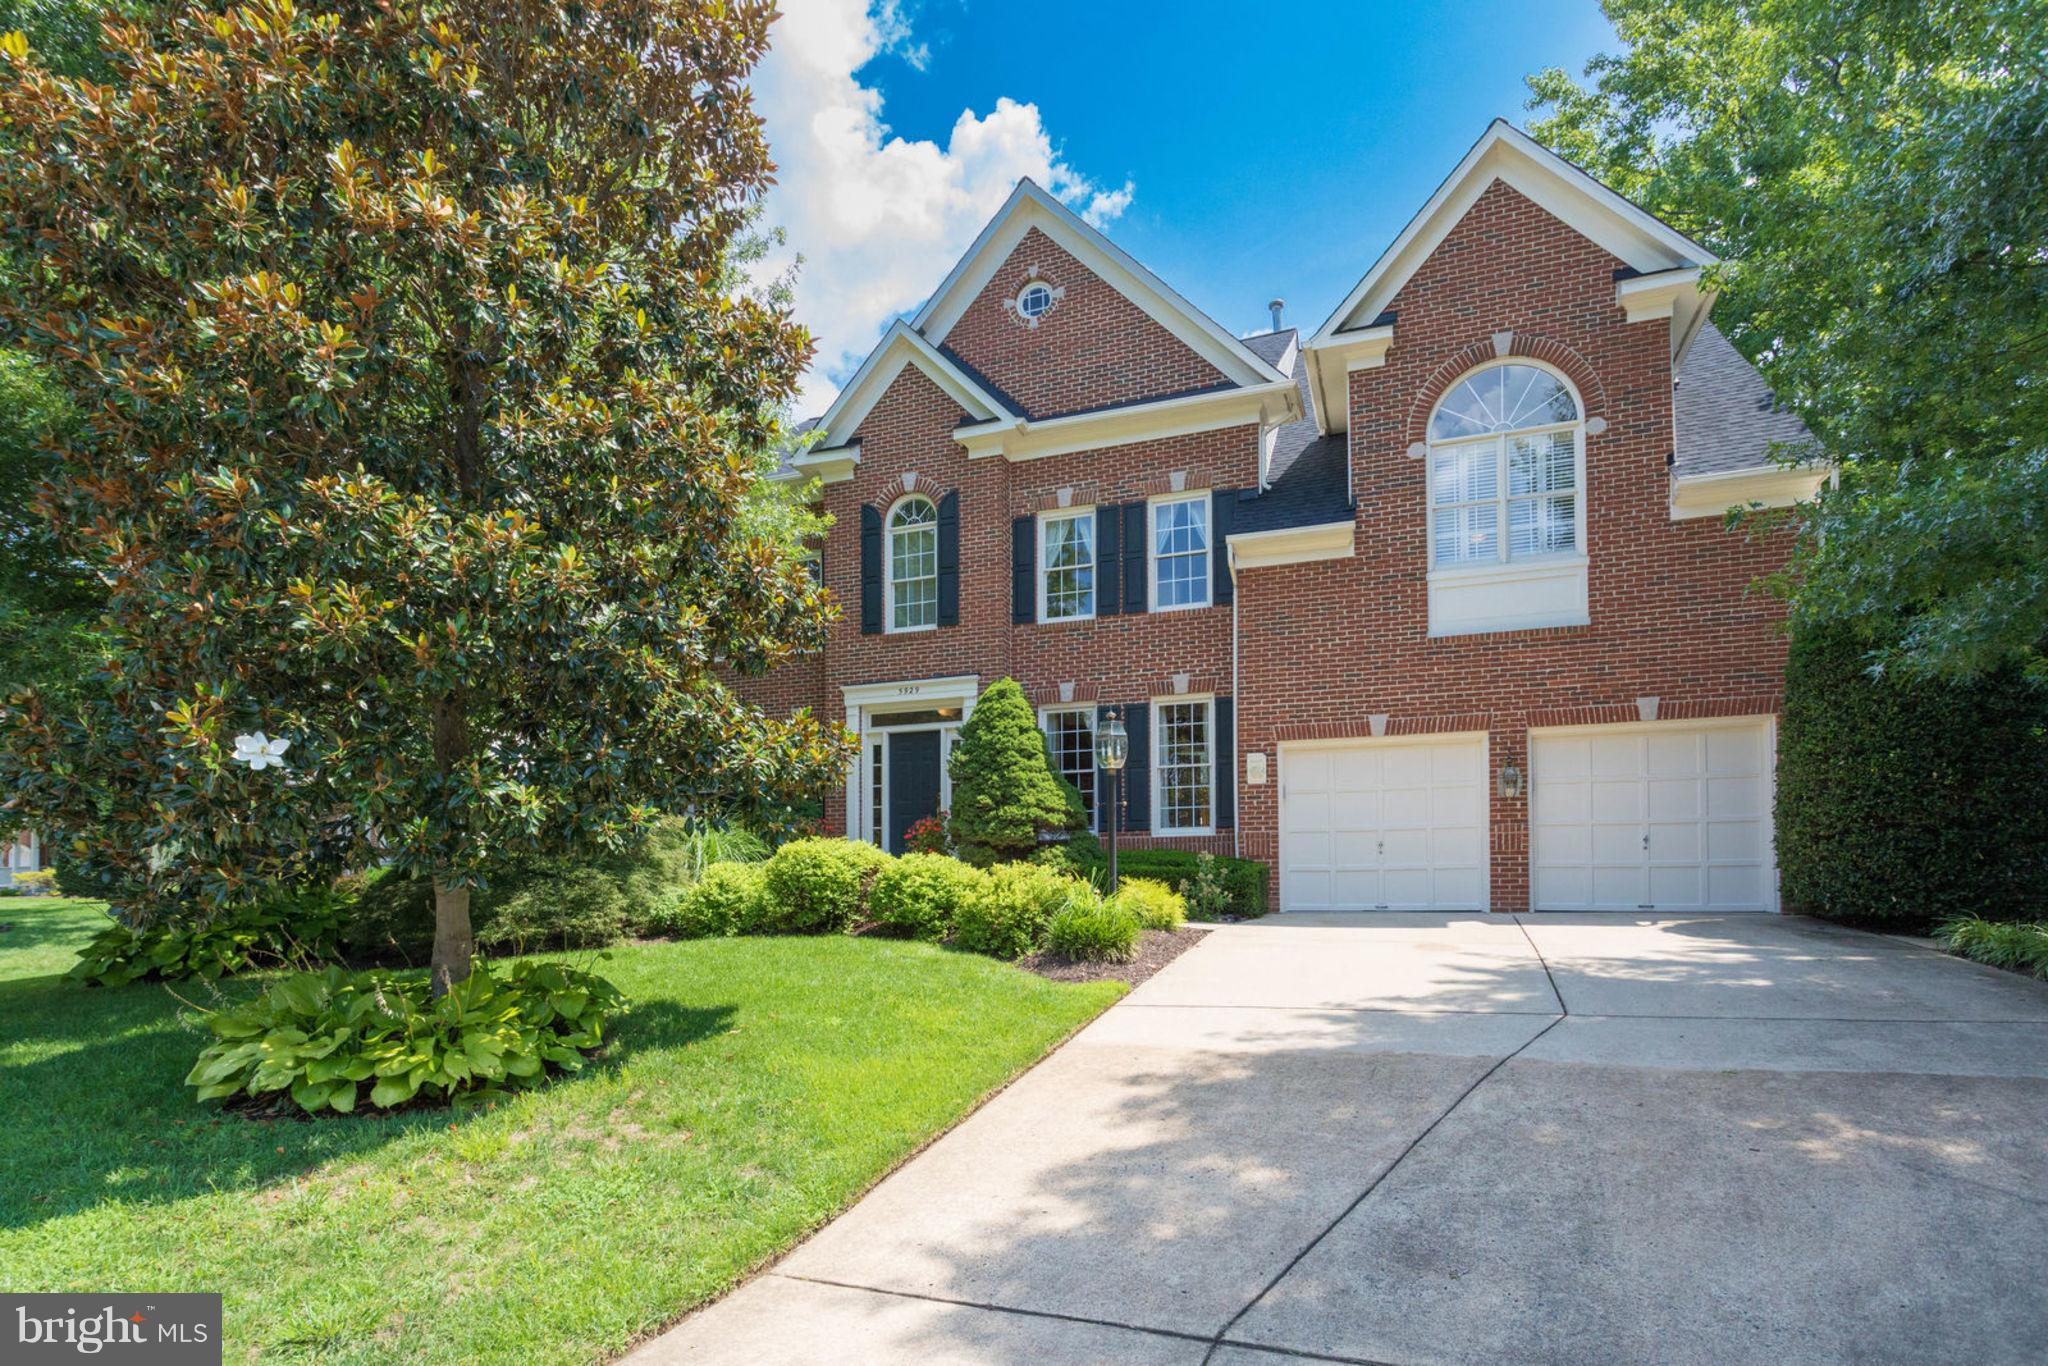 Near Wilton Woods, rarely available Victoria Oaks Colonial loc on a cul-de-sac; 3-fin lvls, 4 BRs, 6.5 BAs, 3 bonus rms that can easily function as BRs, 2-story great rm & gourmet kitchn~ both w/wlkout to bckyrd; lower lvl fam rm & rec rm w/full ktchn & walk-out stairs to fabulous fenced bckyrd w/in-grd pool & spa, water fountain, patio & lush lndscpng. Roof 2018; HVAC Zone 1 2015 & Zone 2 2017